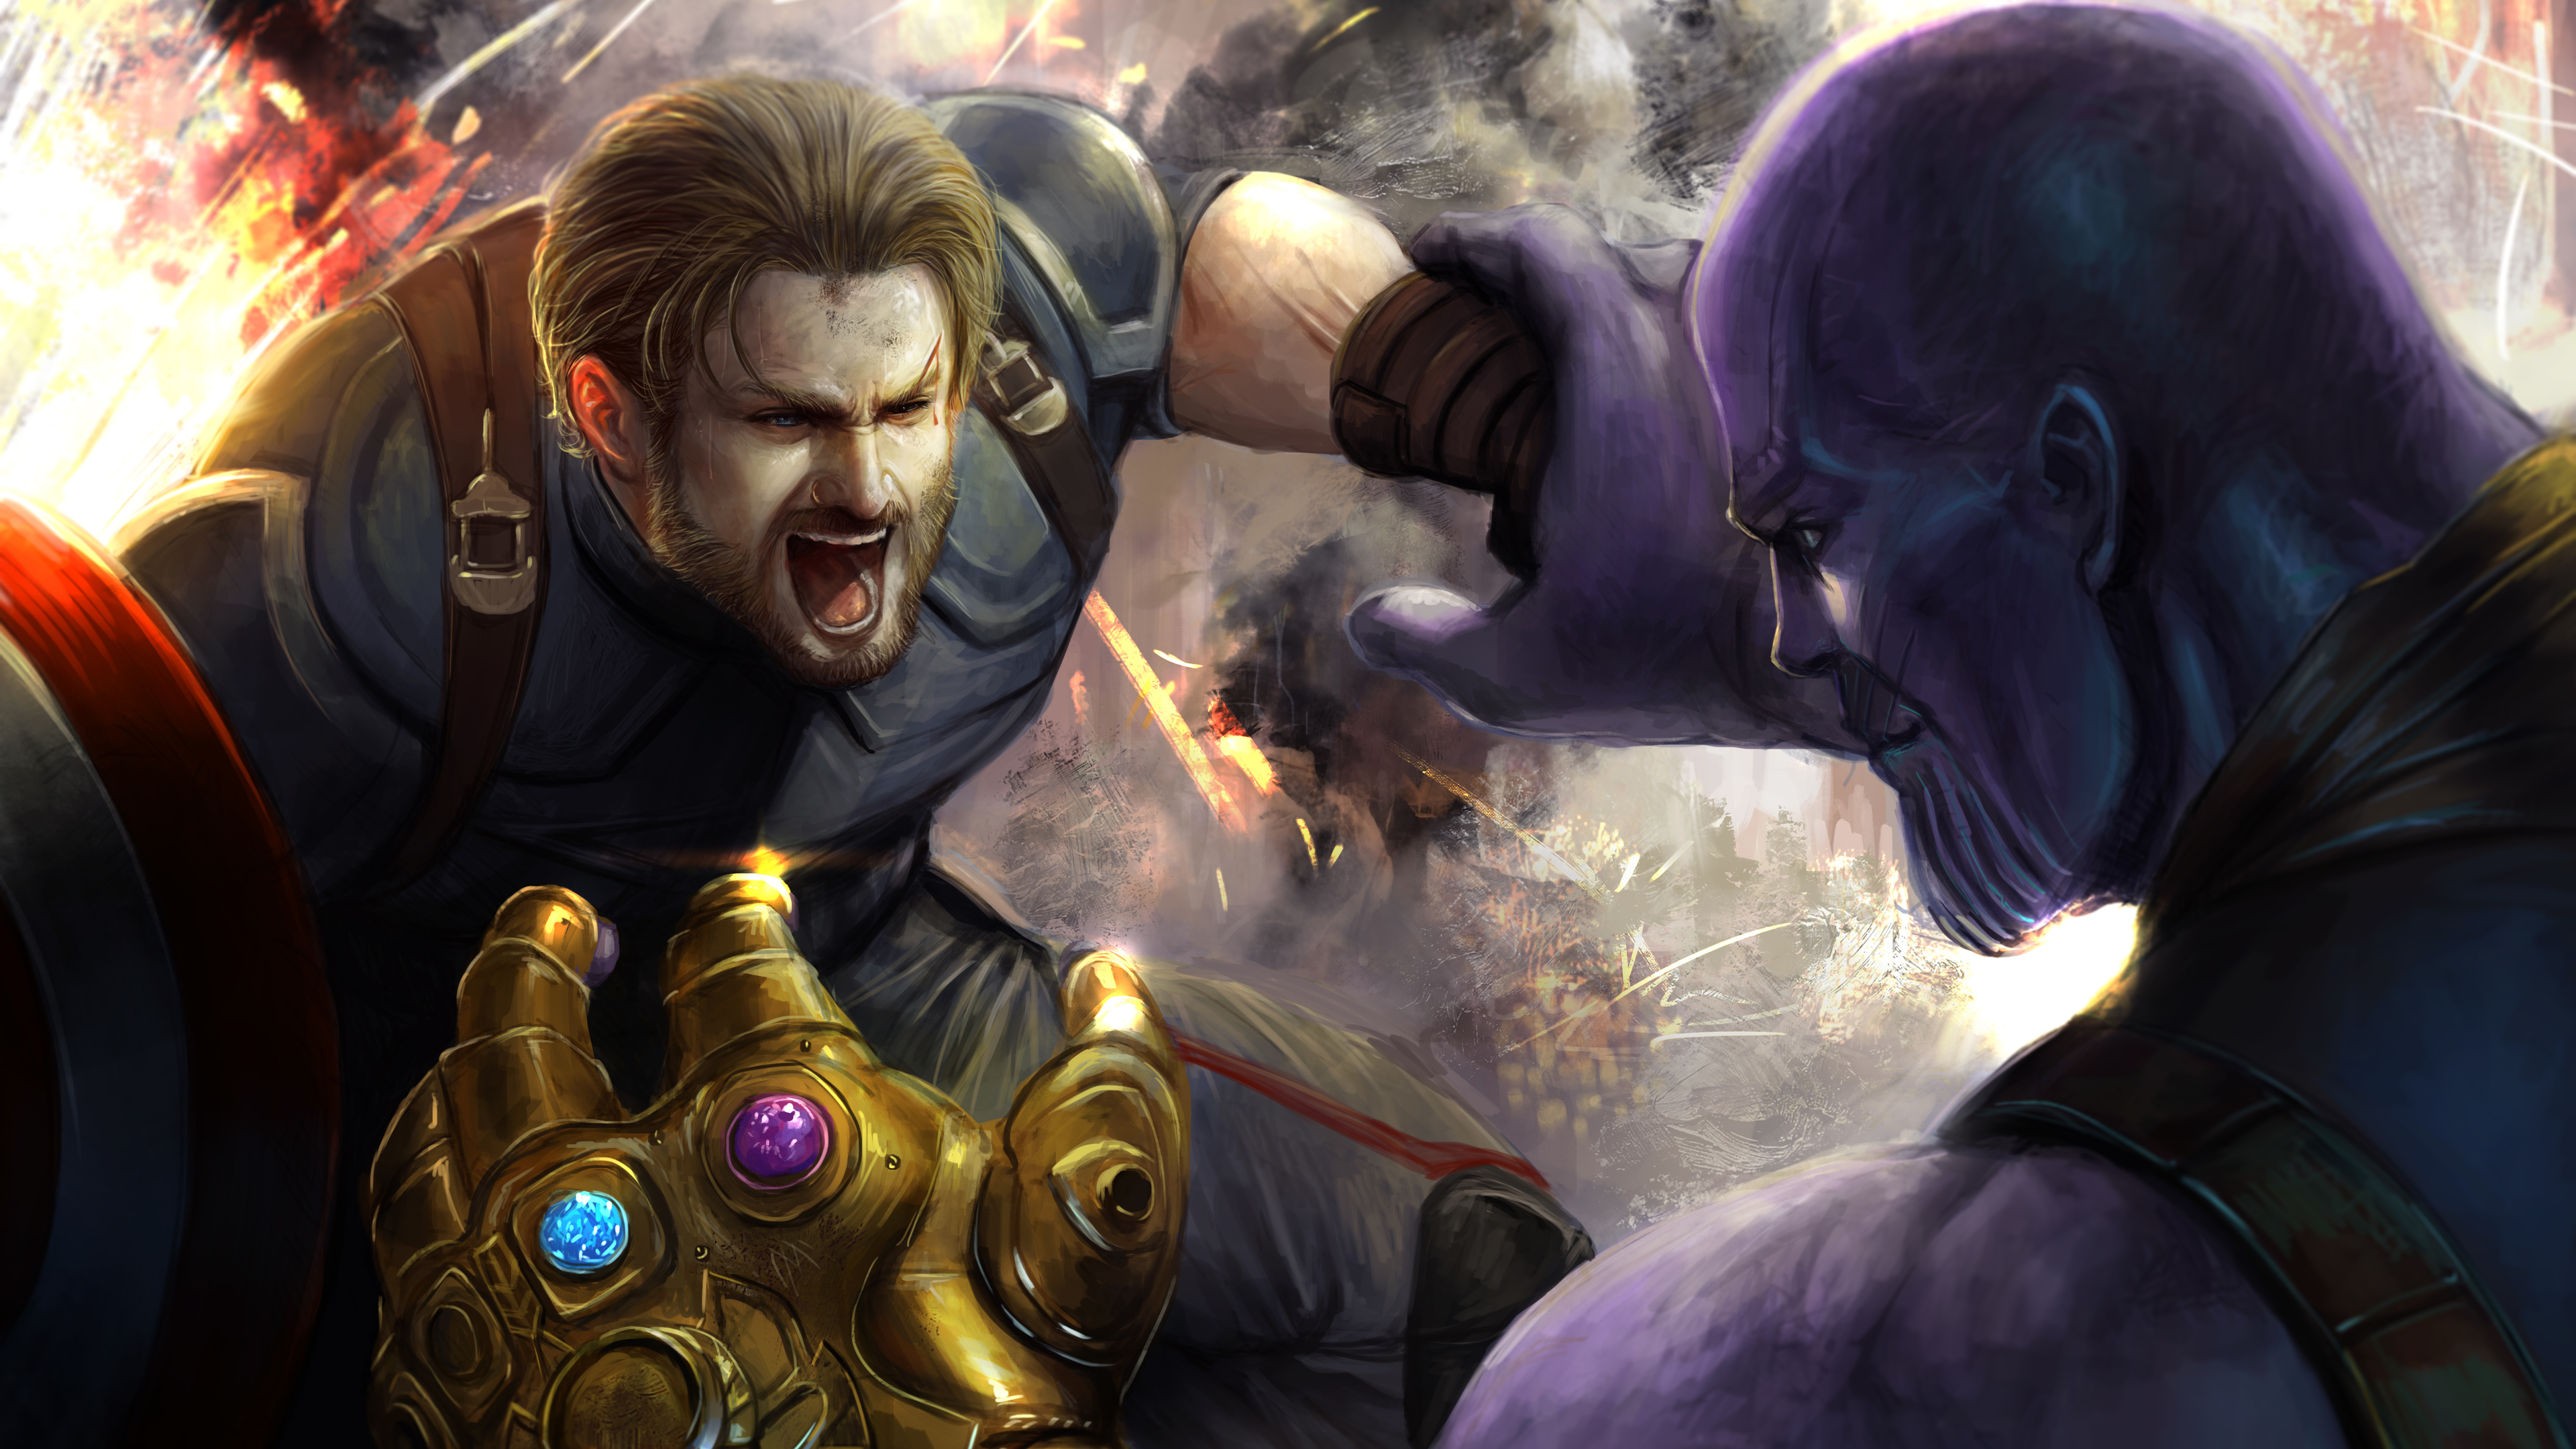 captain vs thanos art 4k 1550511892 - Captain VS Thanos Art 4k - thanos-wallpapers, superheroes wallpapers, hd-wallpapers, digital art wallpapers, deviantart wallpapers, captain america wallpapers, artwork wallpapers, artist wallpapers, 5k wallpapers, 4k-wallpapers